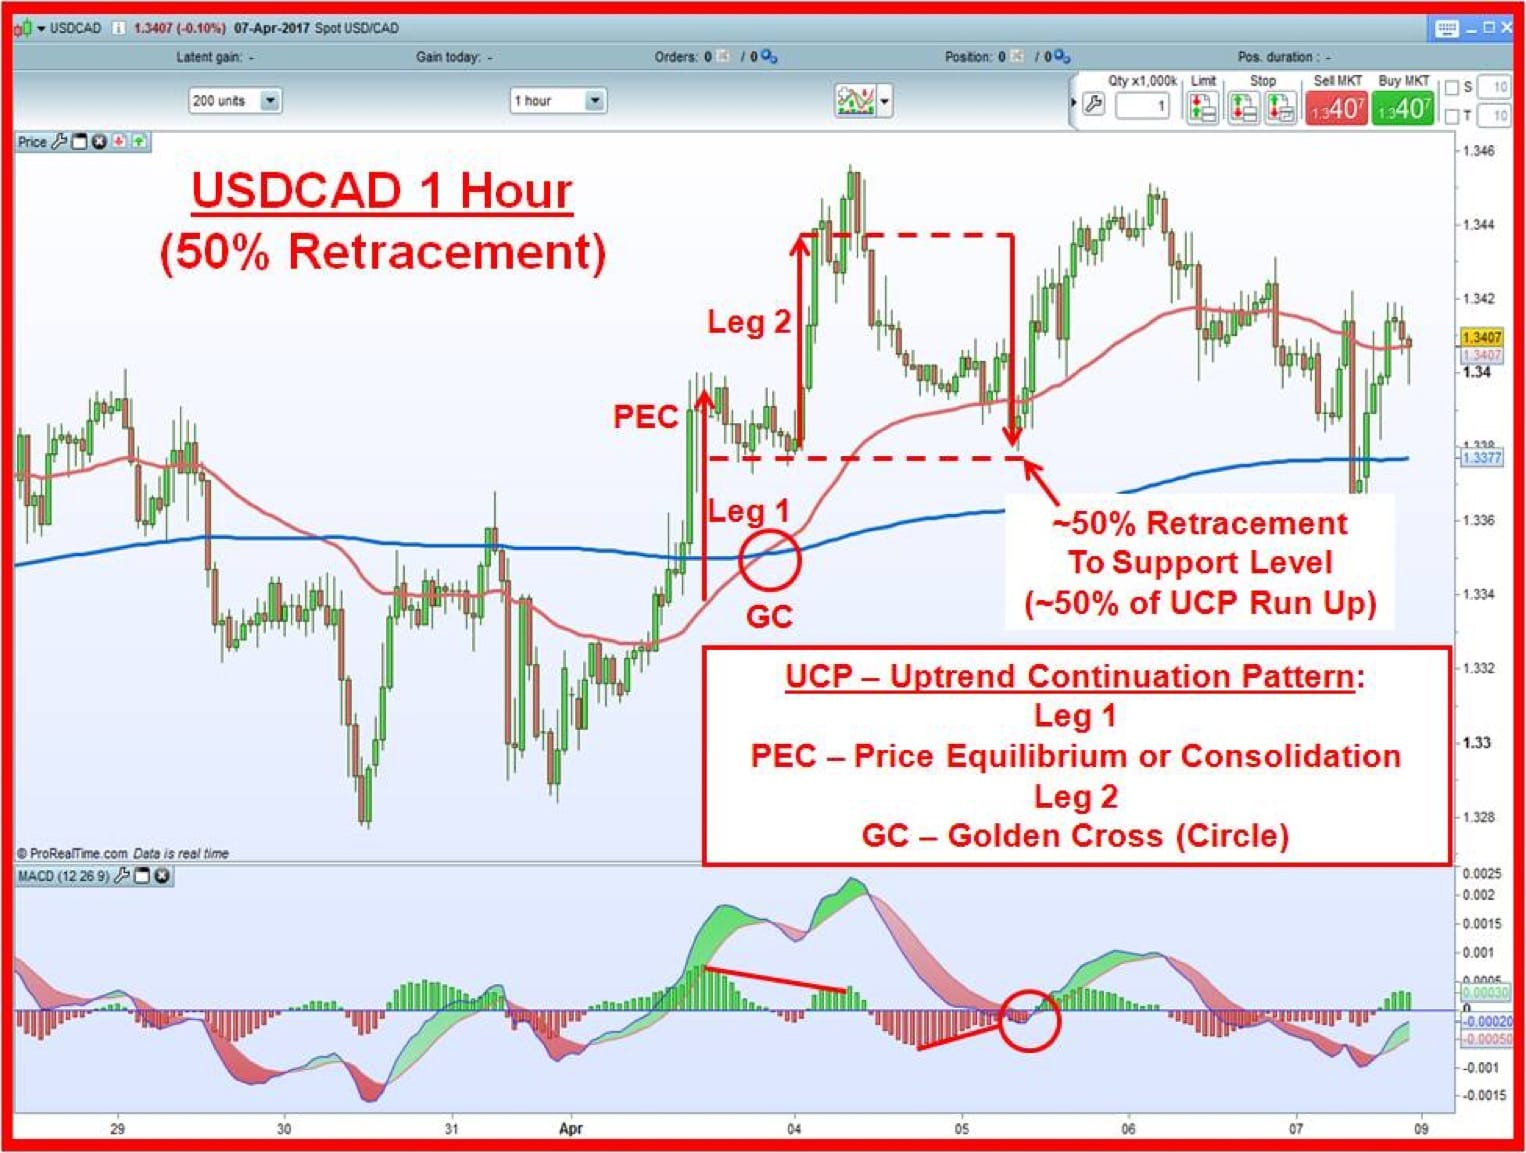 USDCAD 1 hour chart with 50% retracement to a support level after a UCP pattern unfolded.